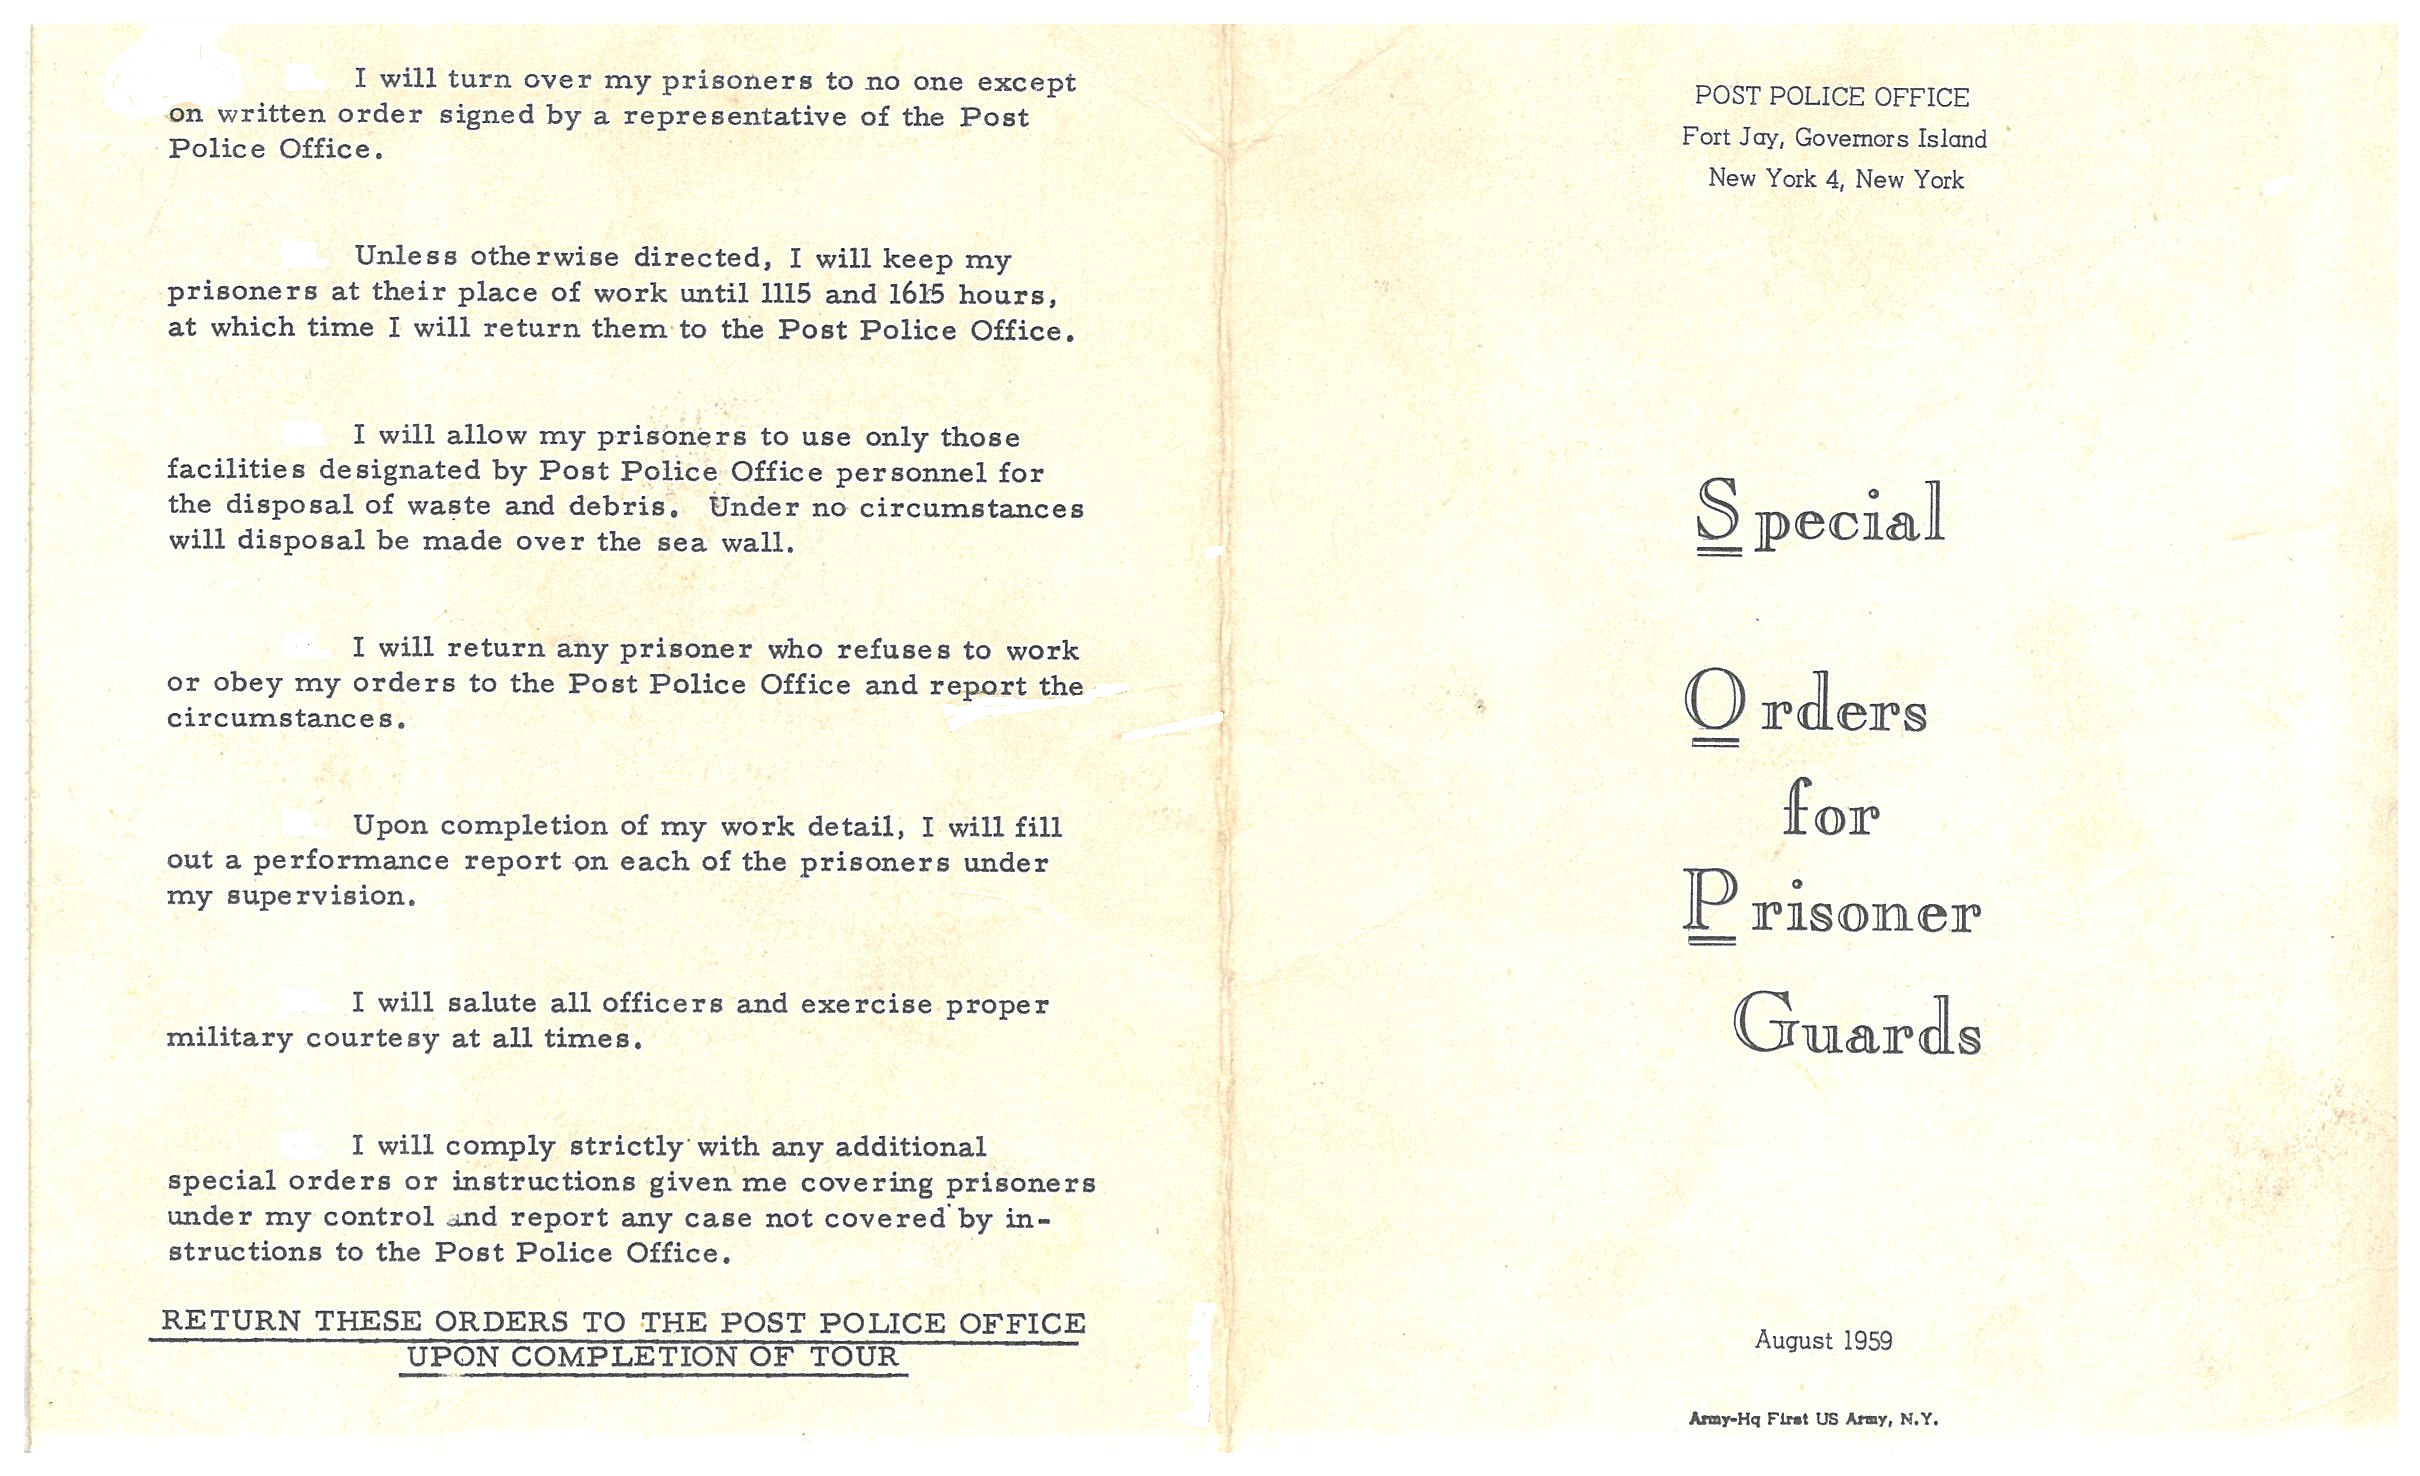 Fort Jay: Special Orders for Prisoner Guards, August 1959